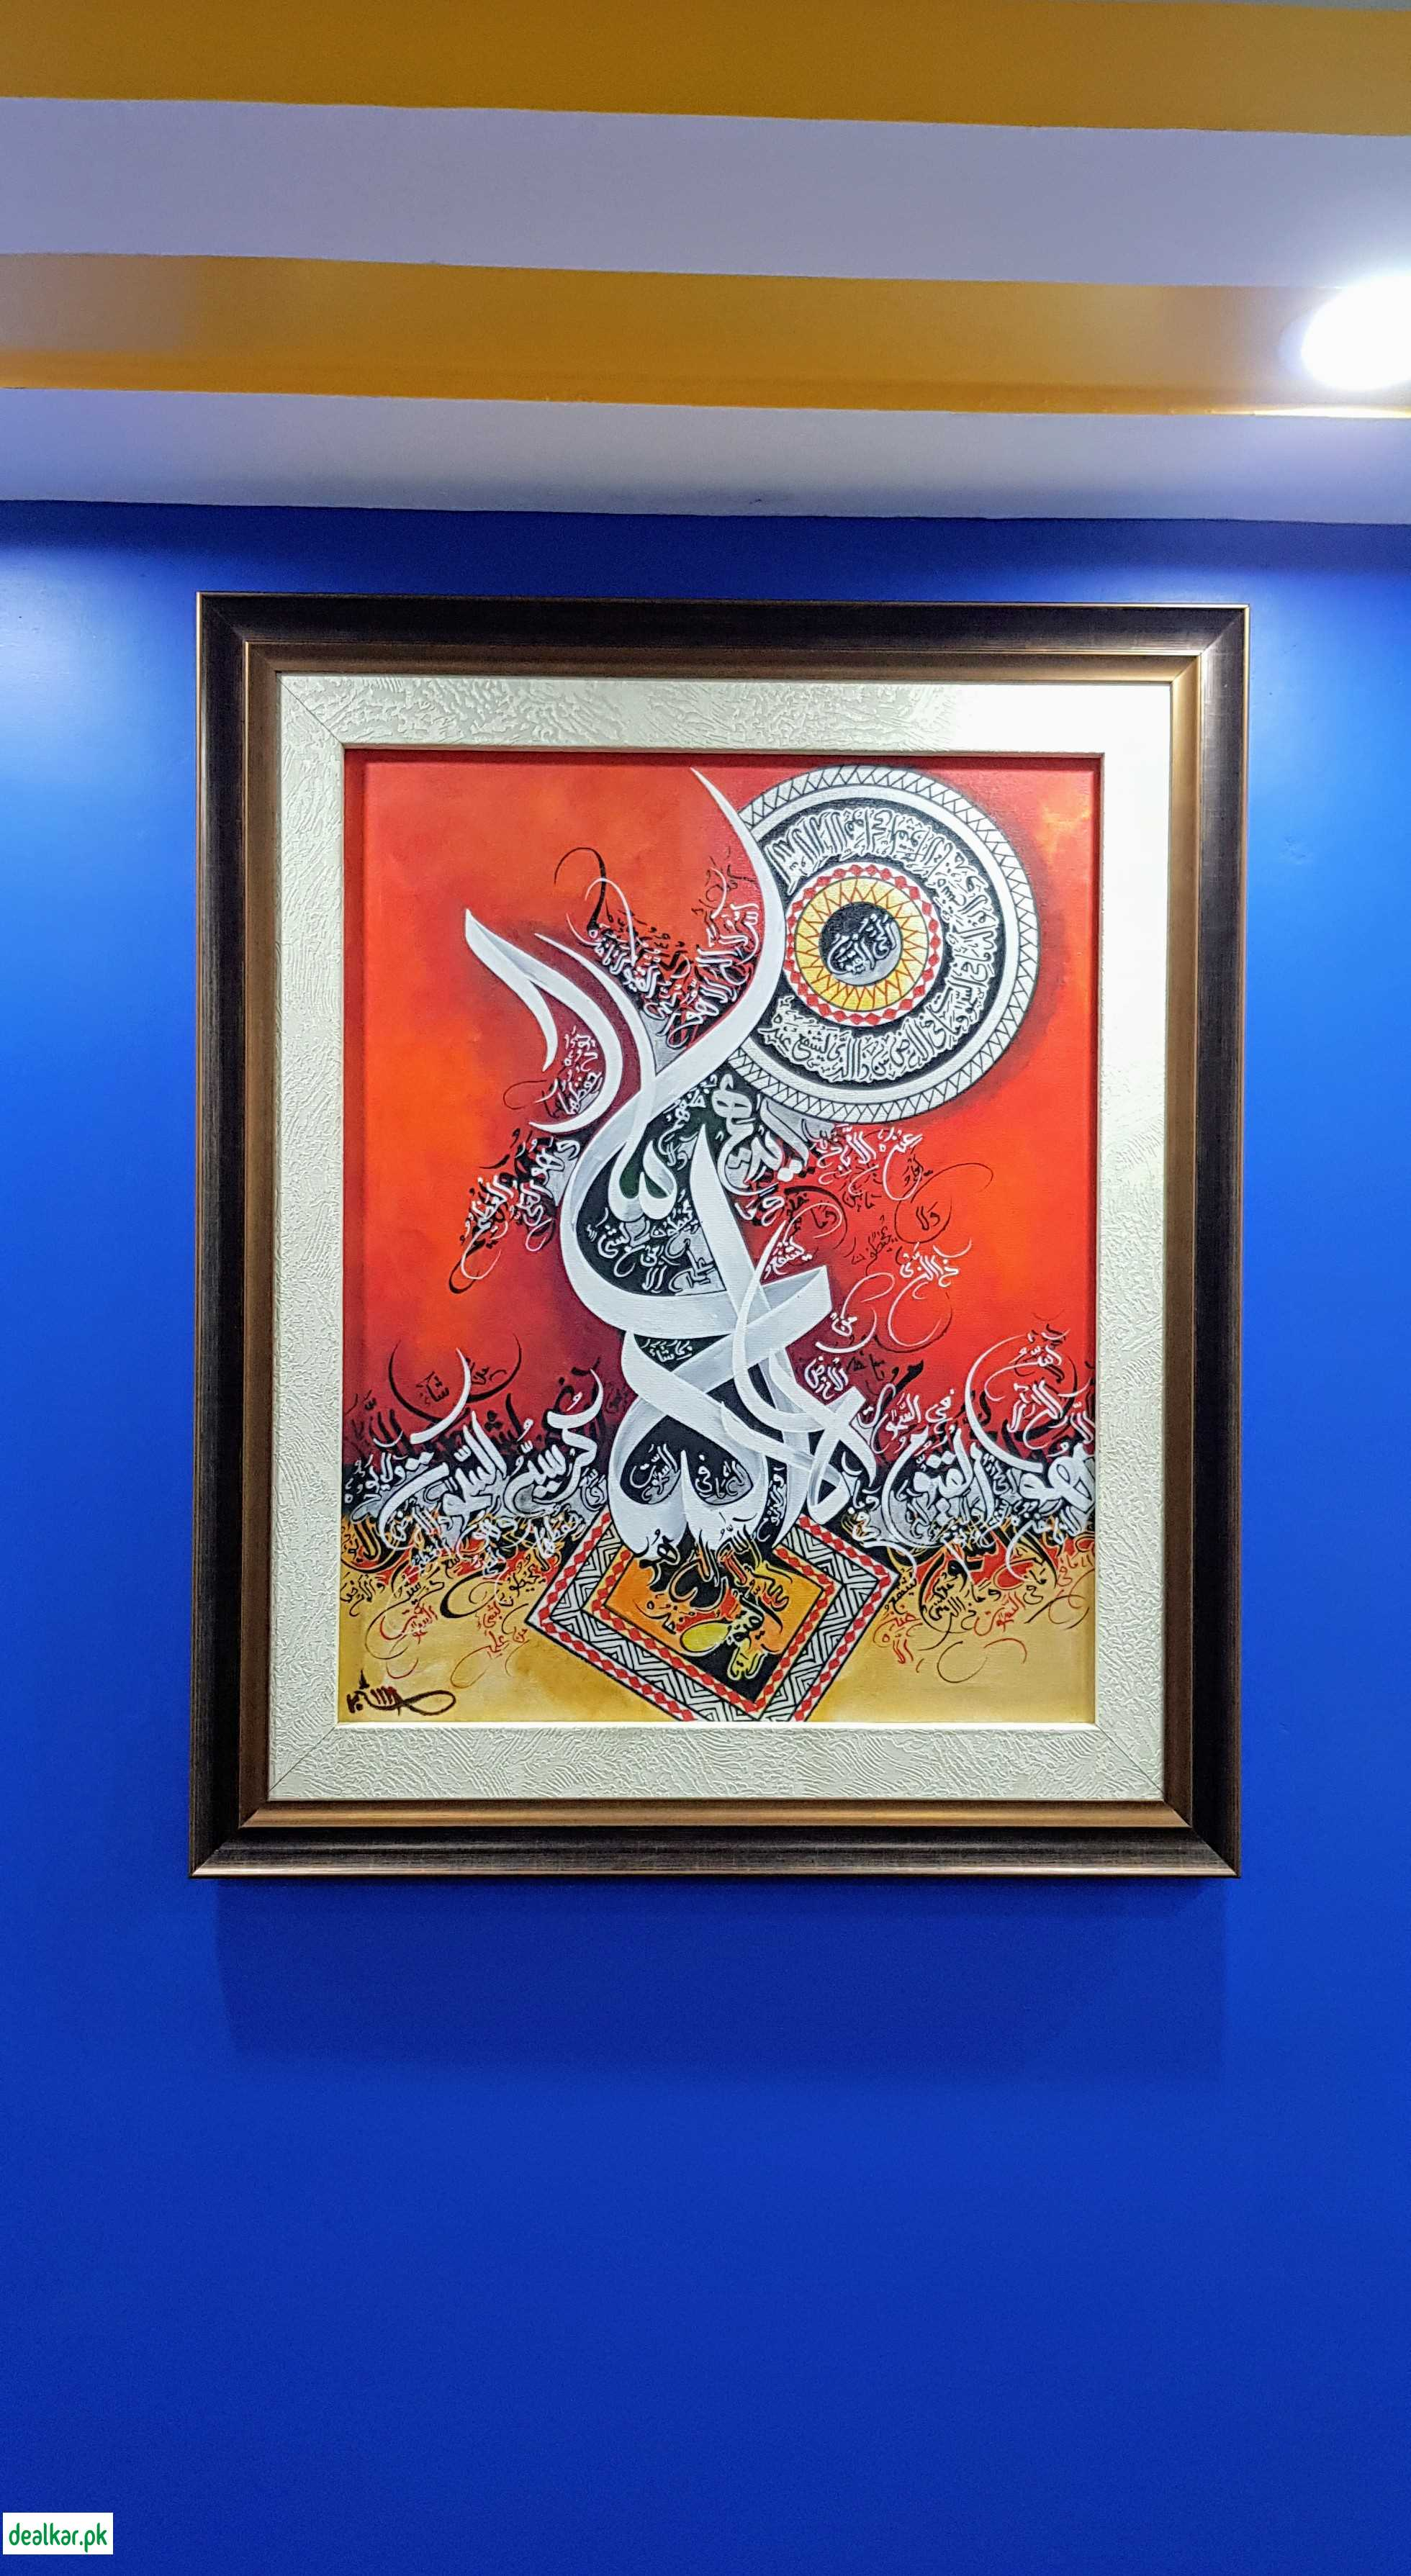 Painting & Mirrors in Pakistan-Furniture & Home Decor for sale